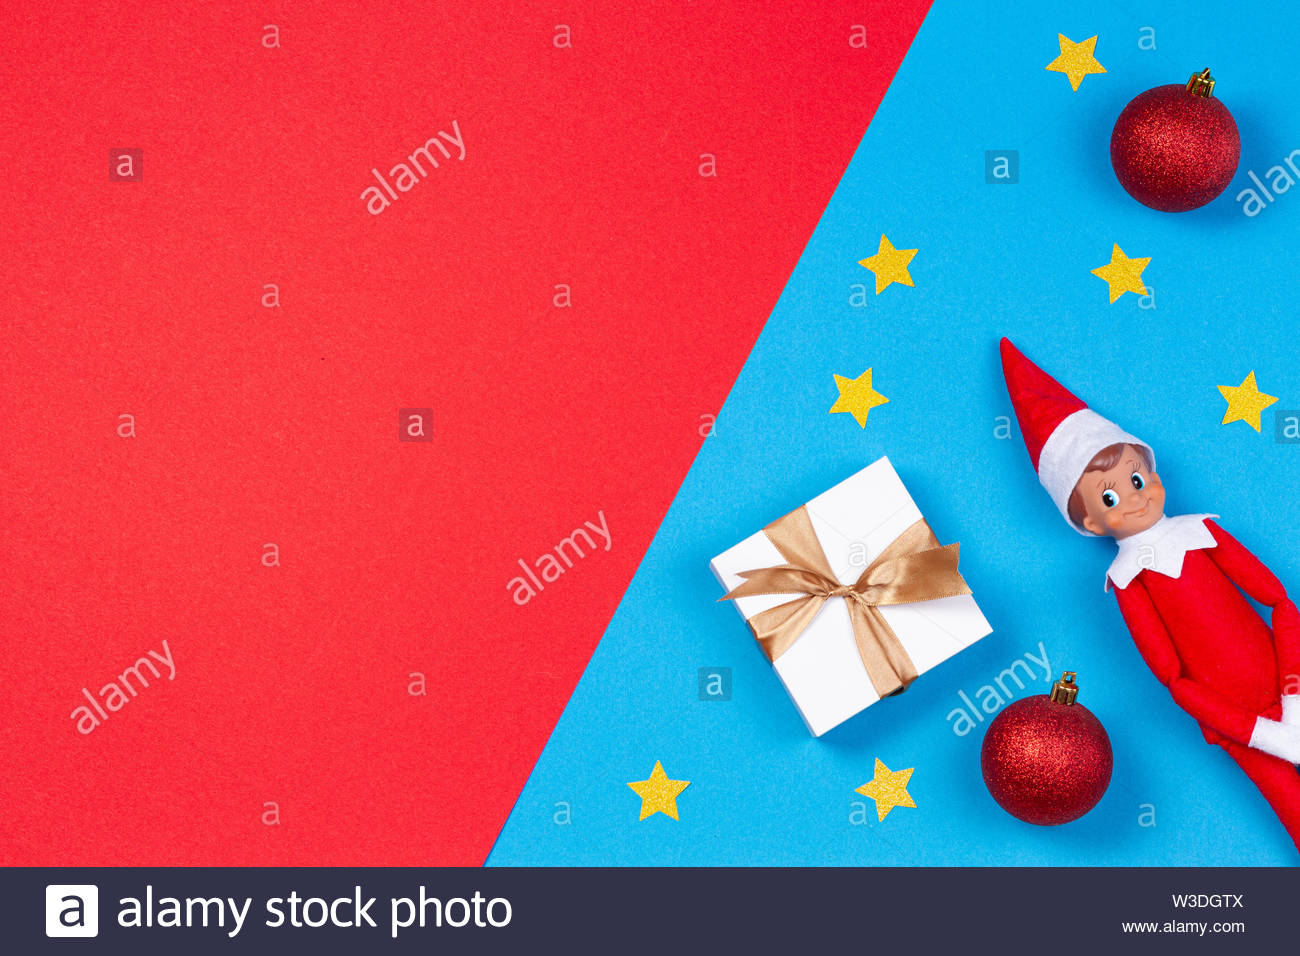 Christmas background. Xmas present, decoration and toy elf on red and blue background - Stock Image